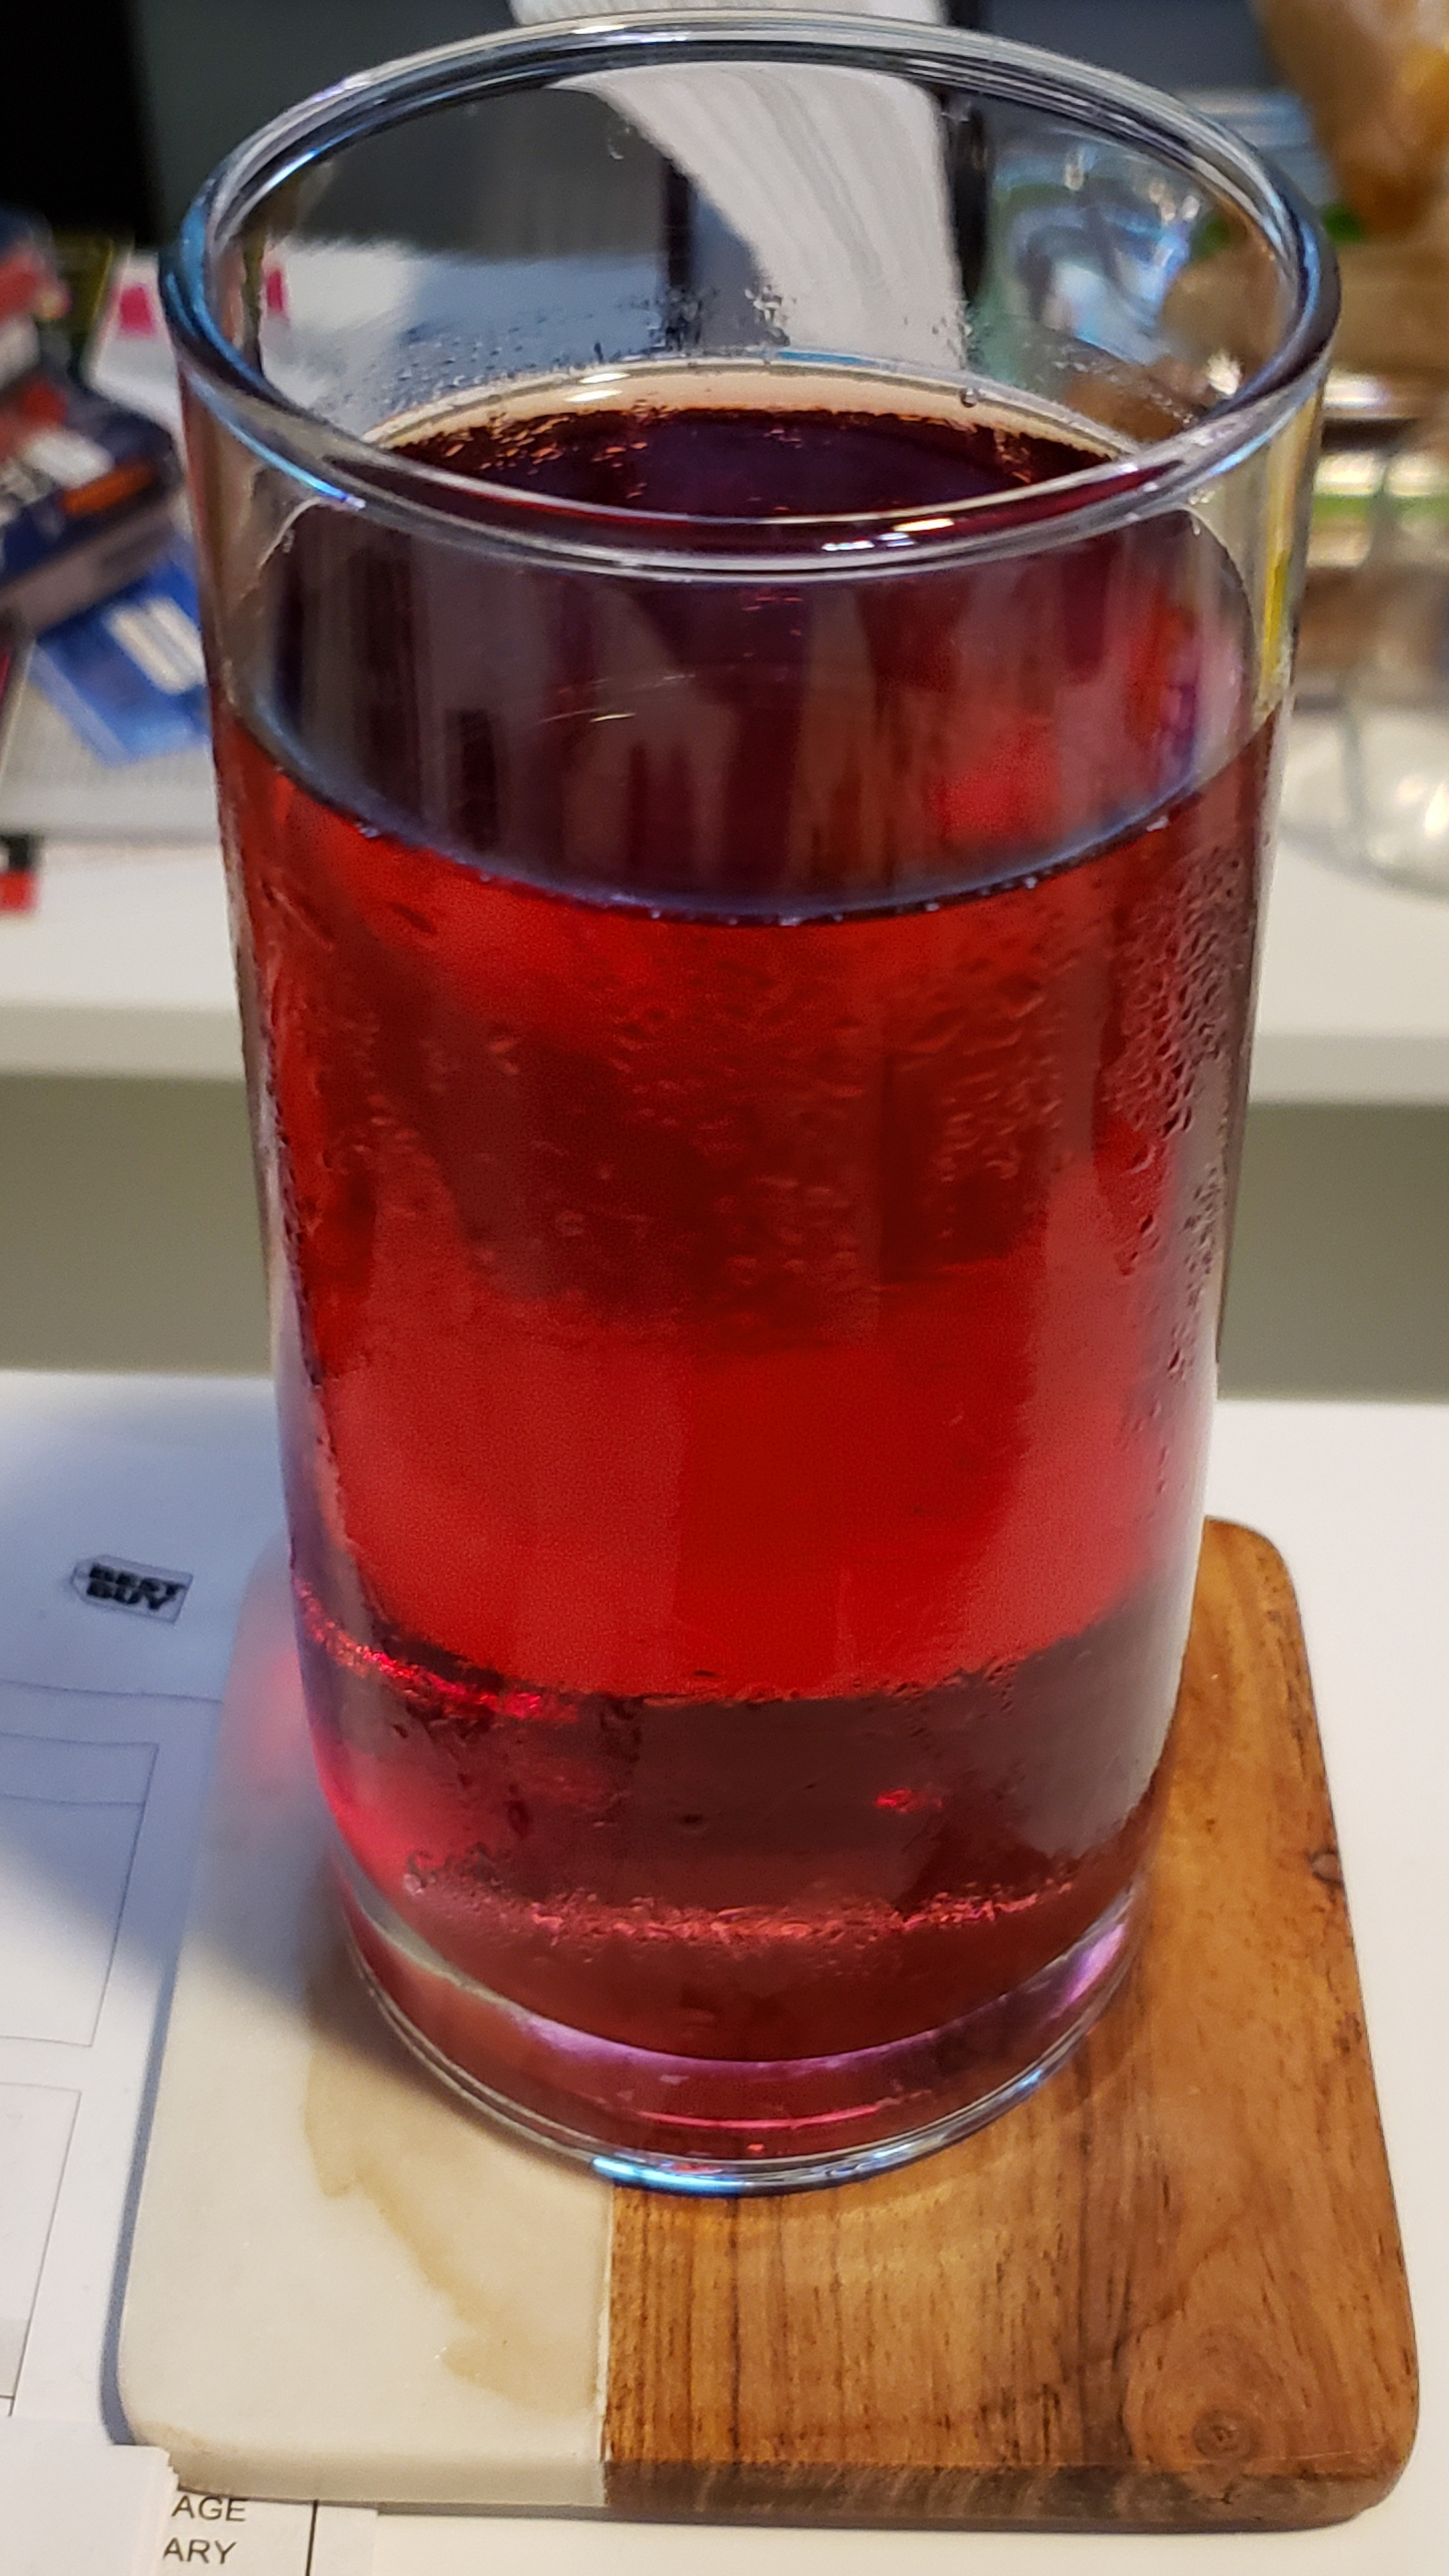 Cranberry diet ginger ale